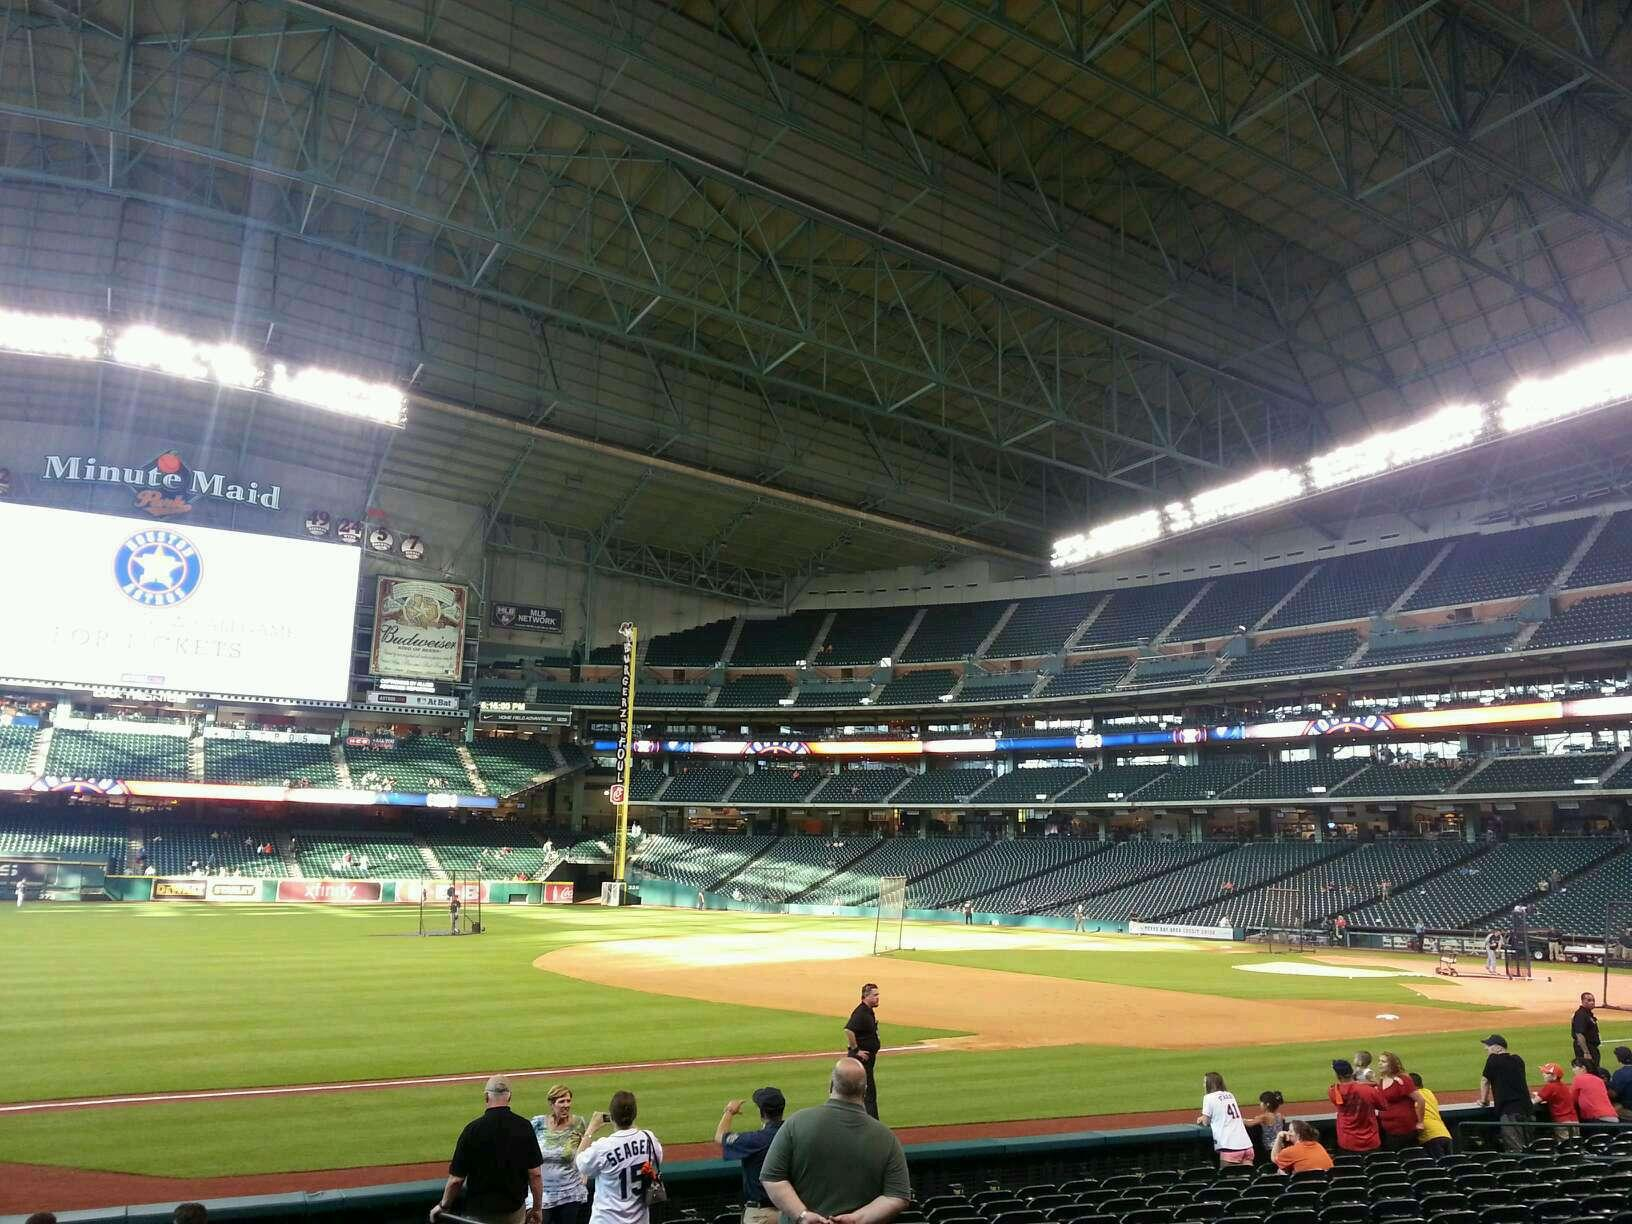 Houston Astros Seat View Minute Maid Park Section 124 Seat